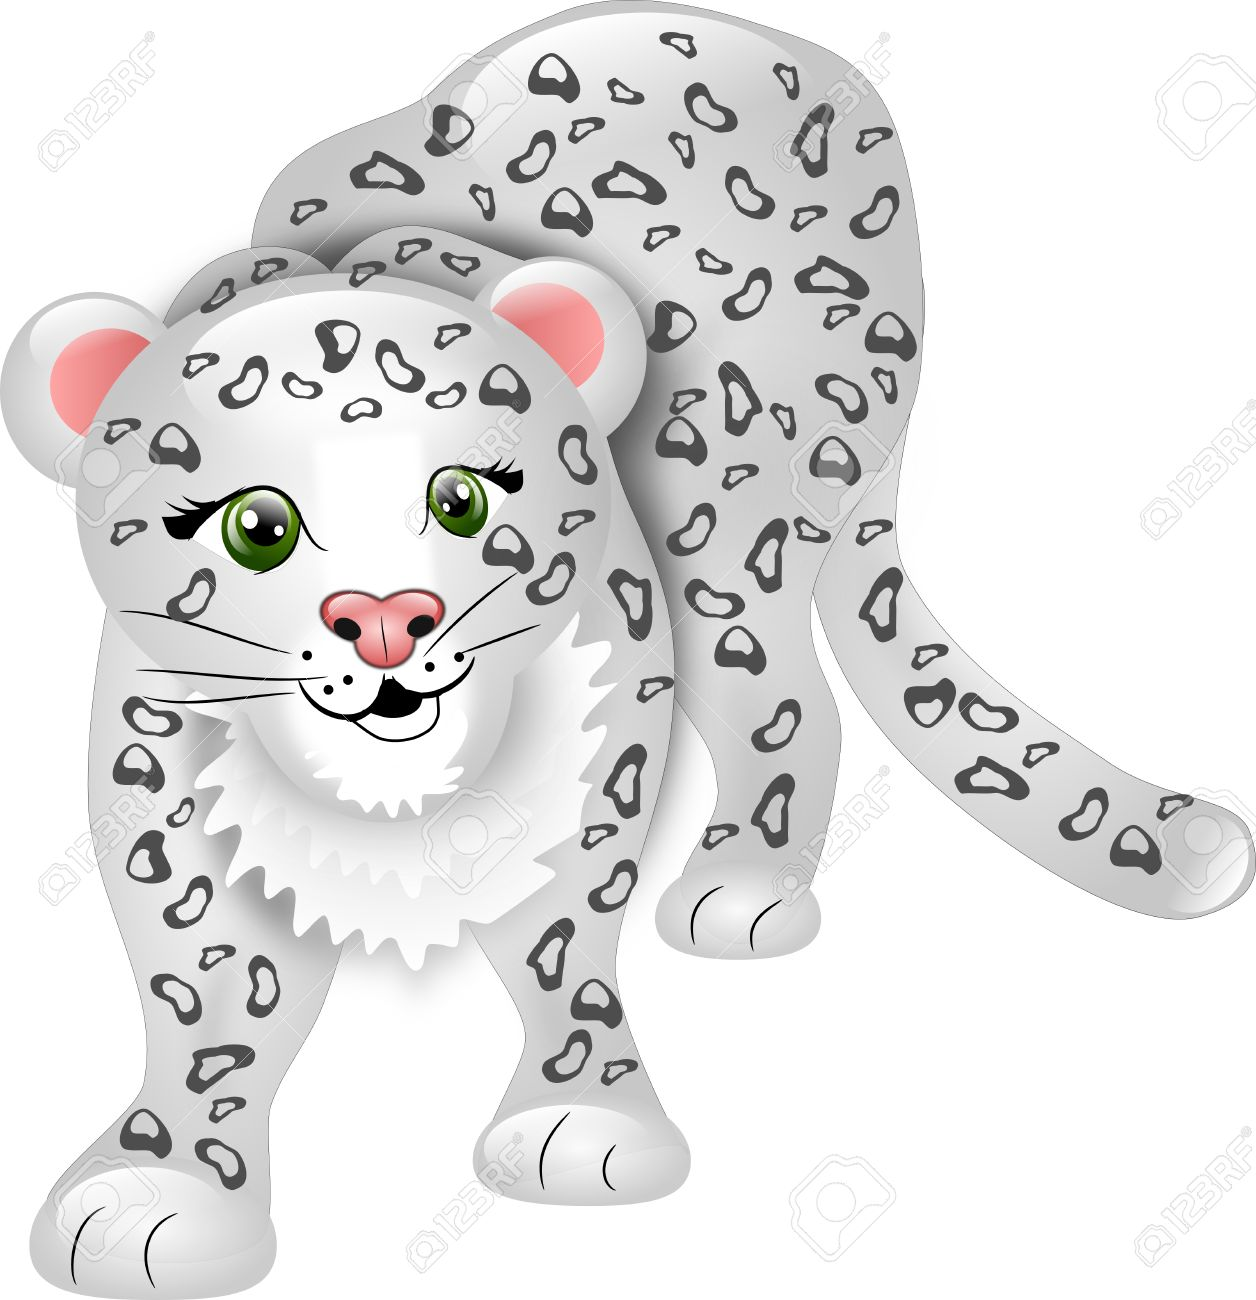 snow leopard: Cartoon snow leopard without background